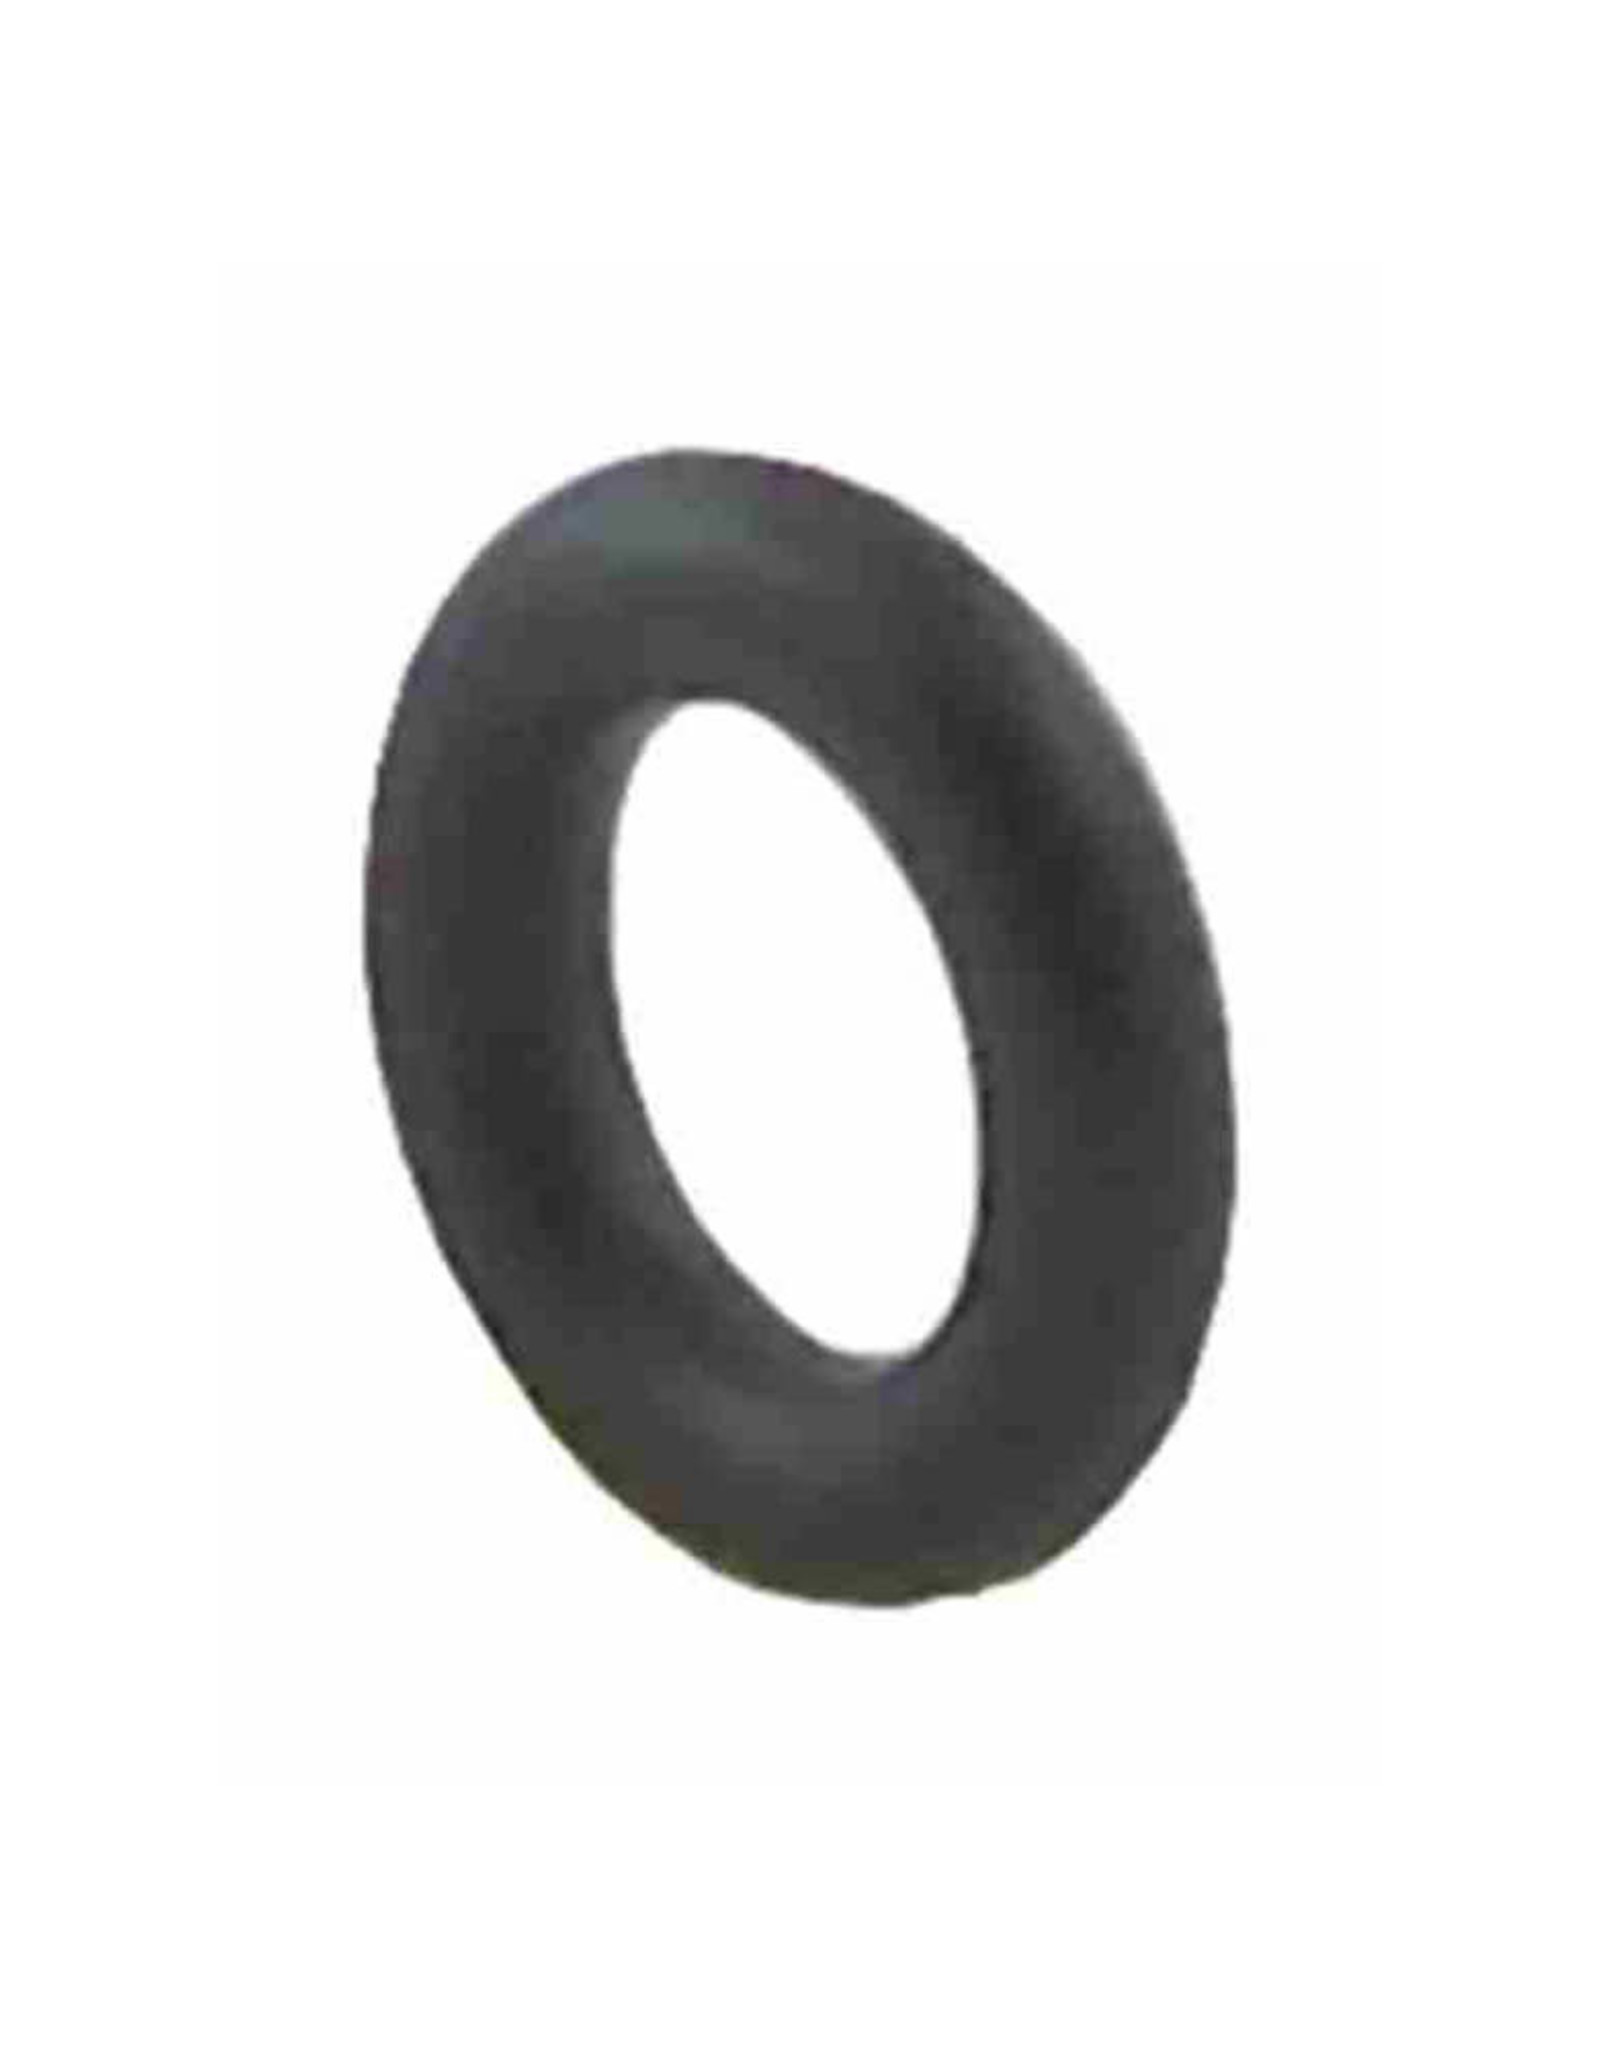 O-ring, Lever Seat For Perl Faucet